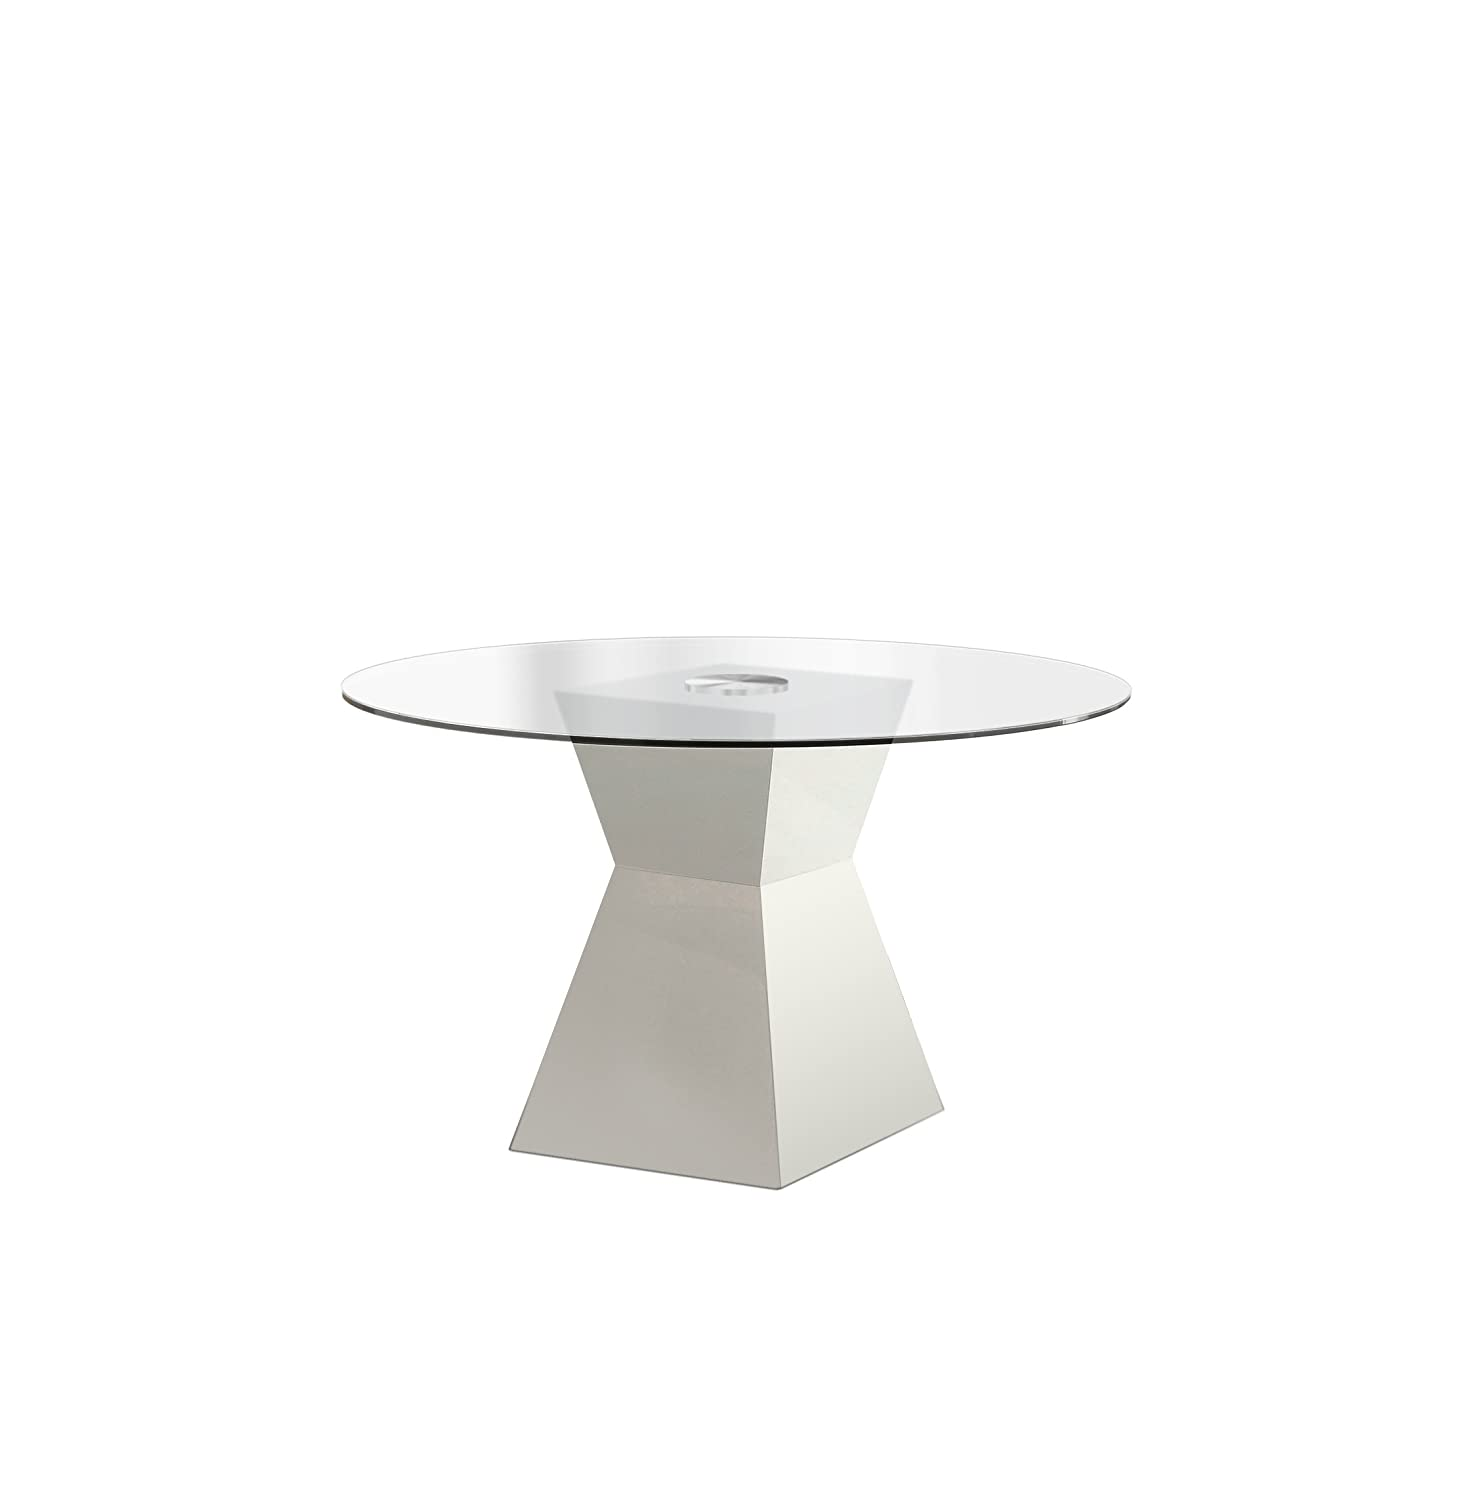 Furniture of America Ethervale Modern Round Dining Table with 12mm Tempered Glass Top, White Finish